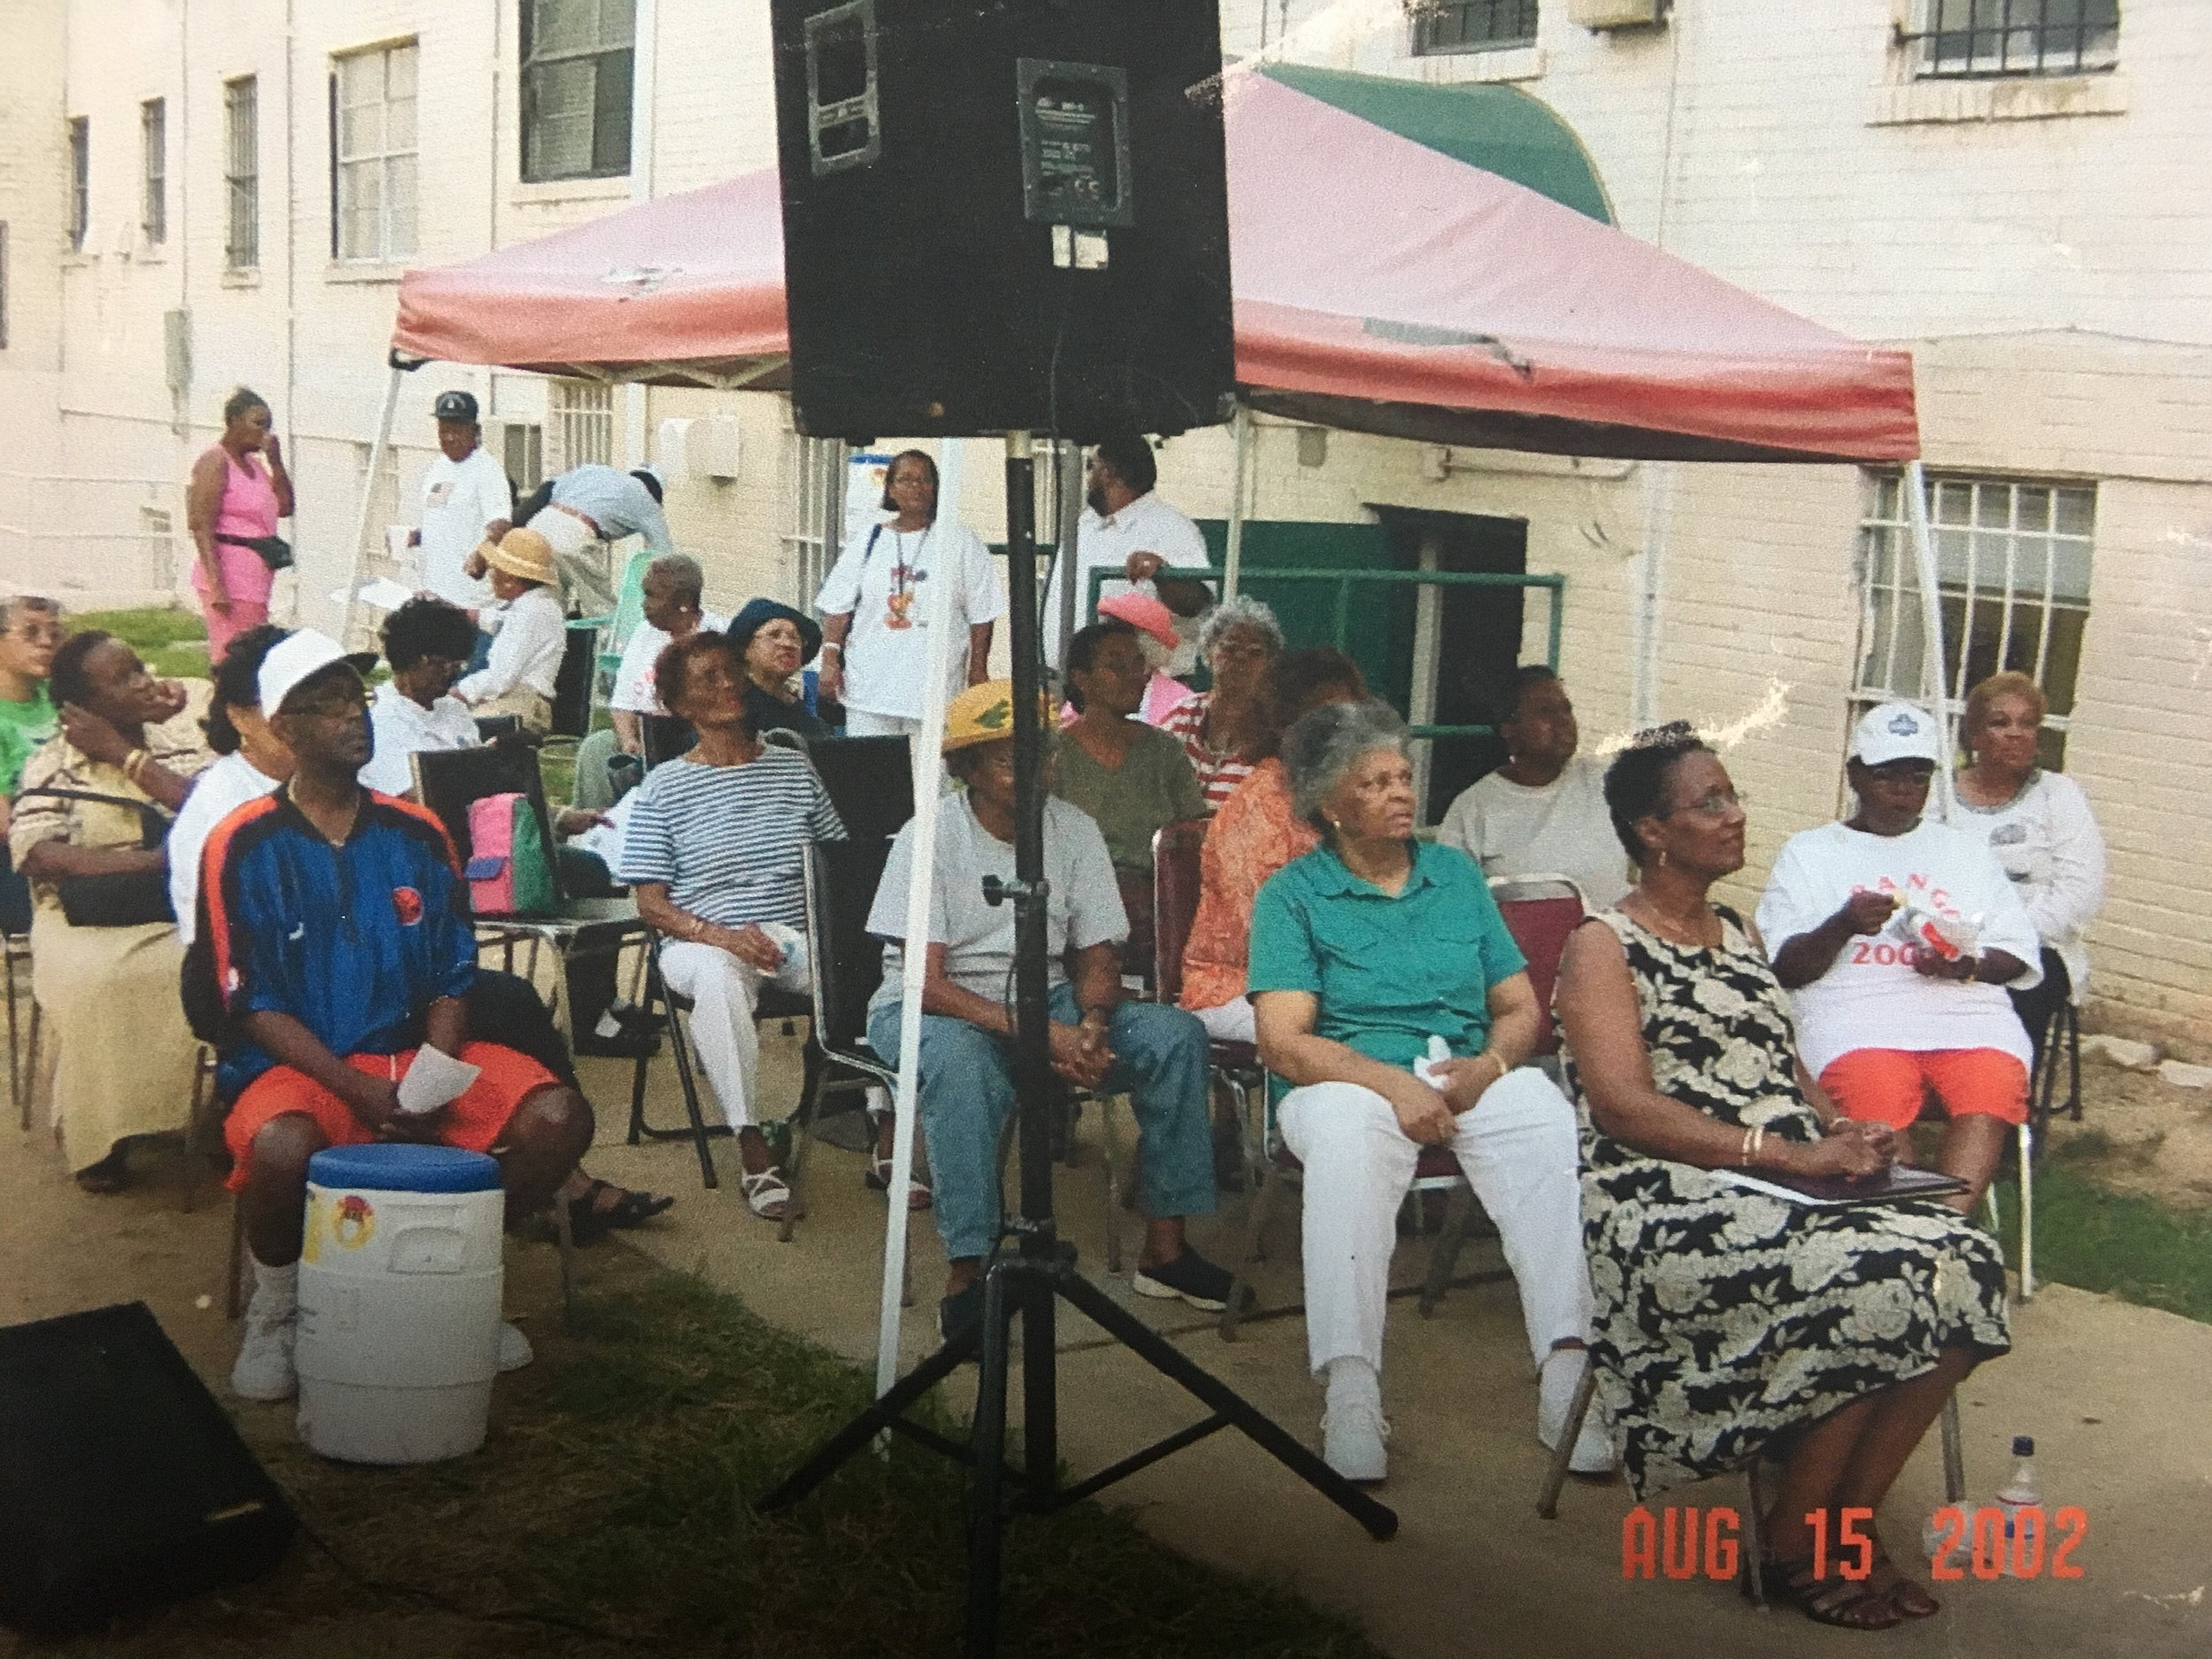 Brookland Manor/Brentwood Village Residents Association meeting outside in the community, 2002.